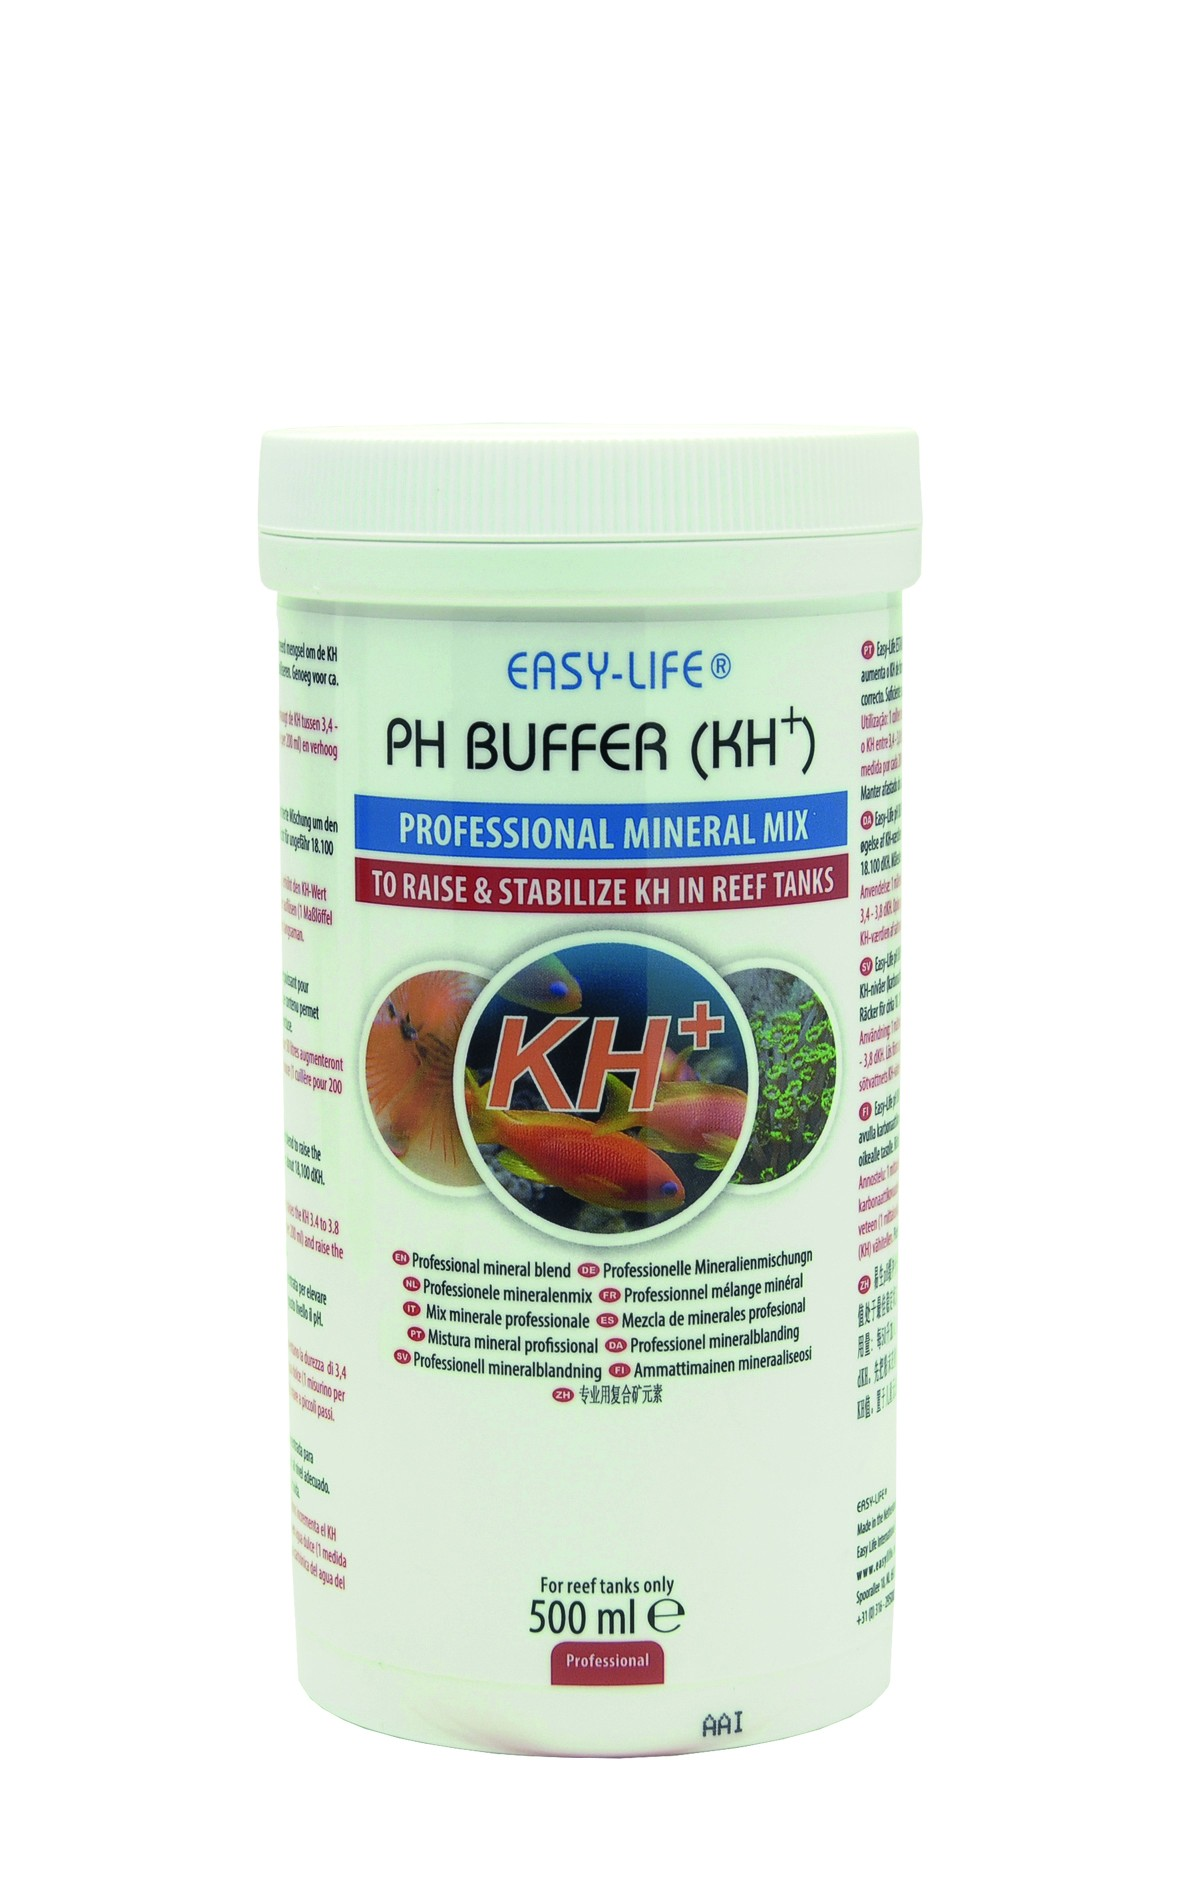 EASY-LIFE pH Buffer (KH+) 300ml mélange concentré pour augmenter le KH et stabiliser le pH au niveau correct